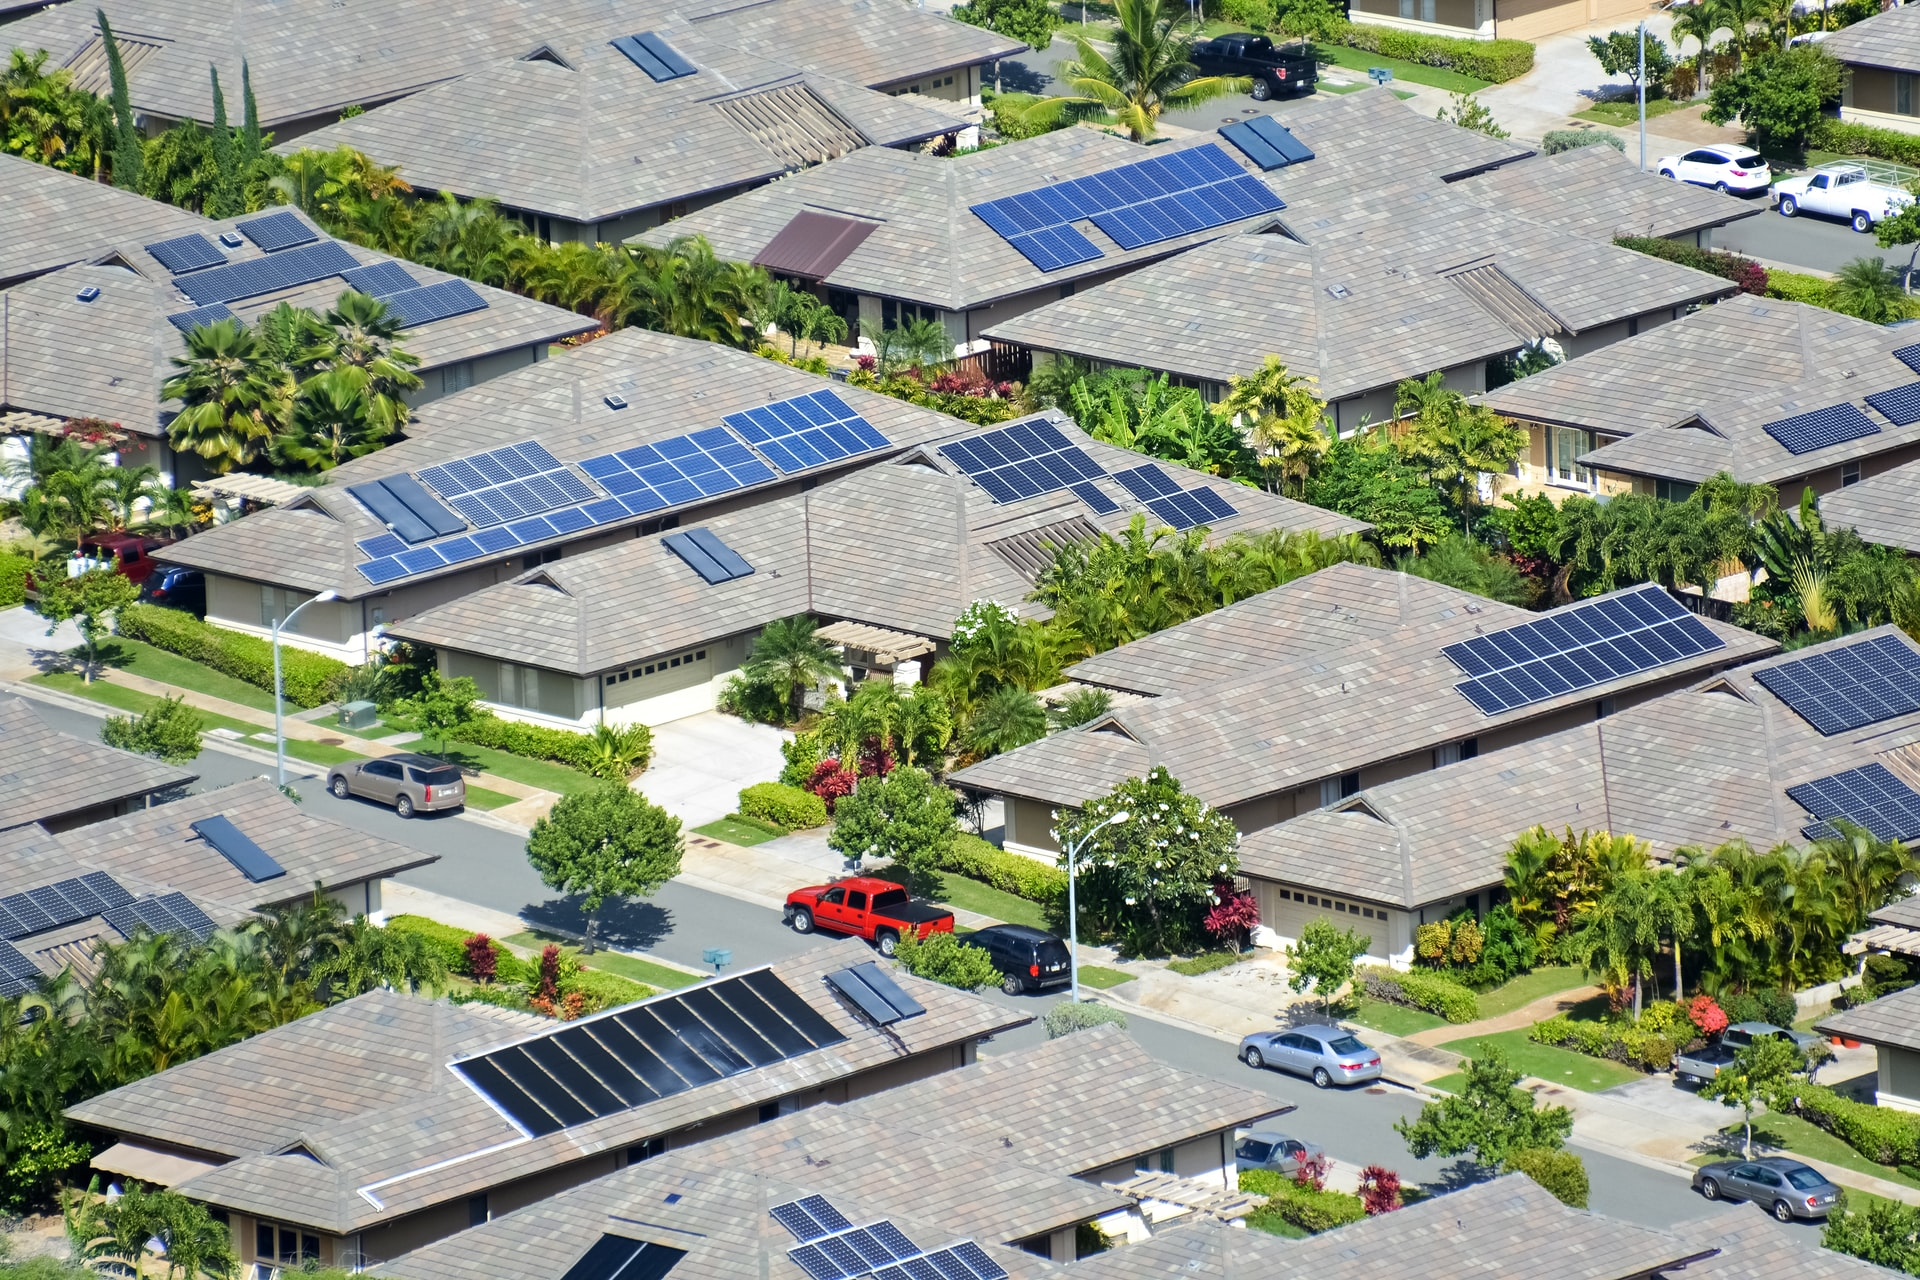 A Useful Guide To Know Everything Before Installing Solar Panels In Your House